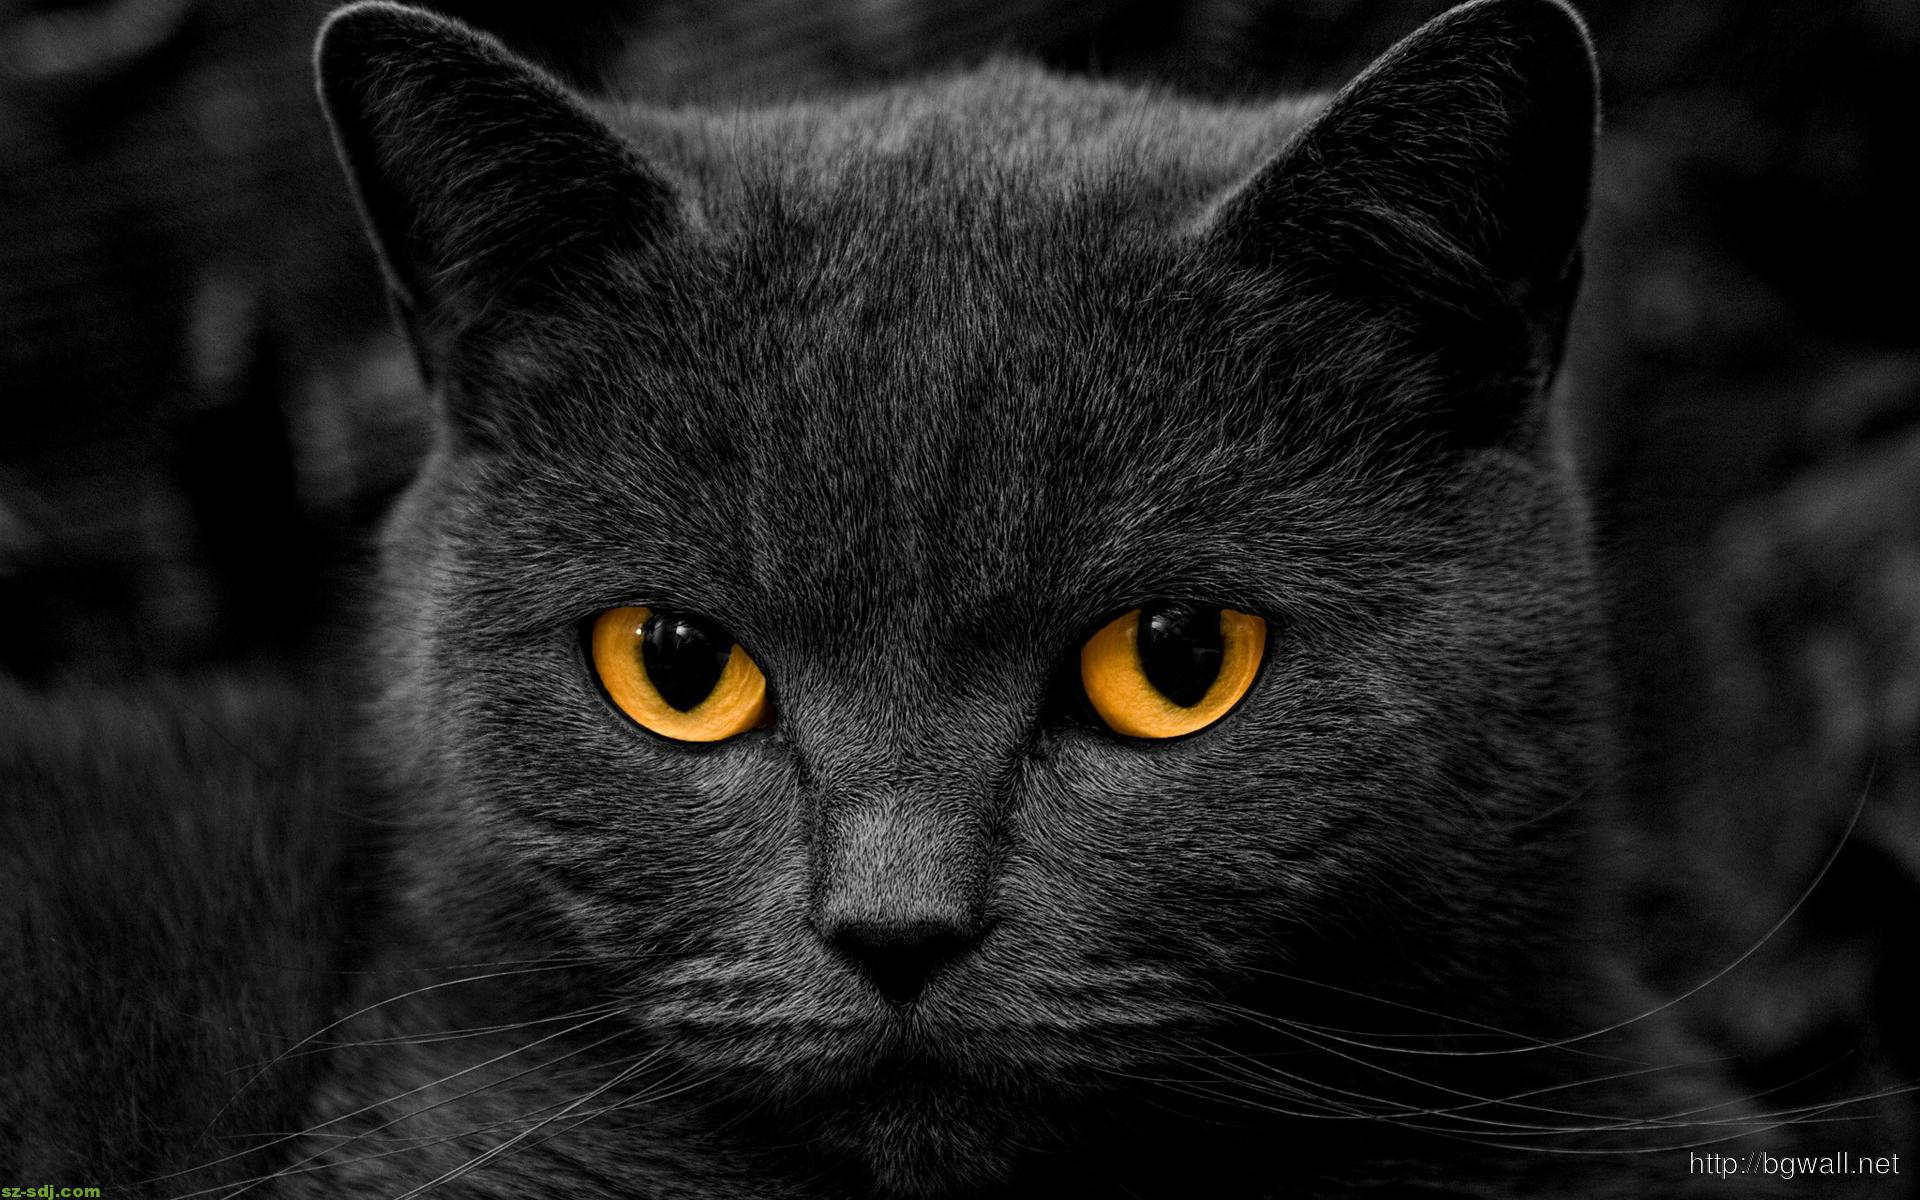 Black Cat Face And Eyes Close Up Wallpaper Hd